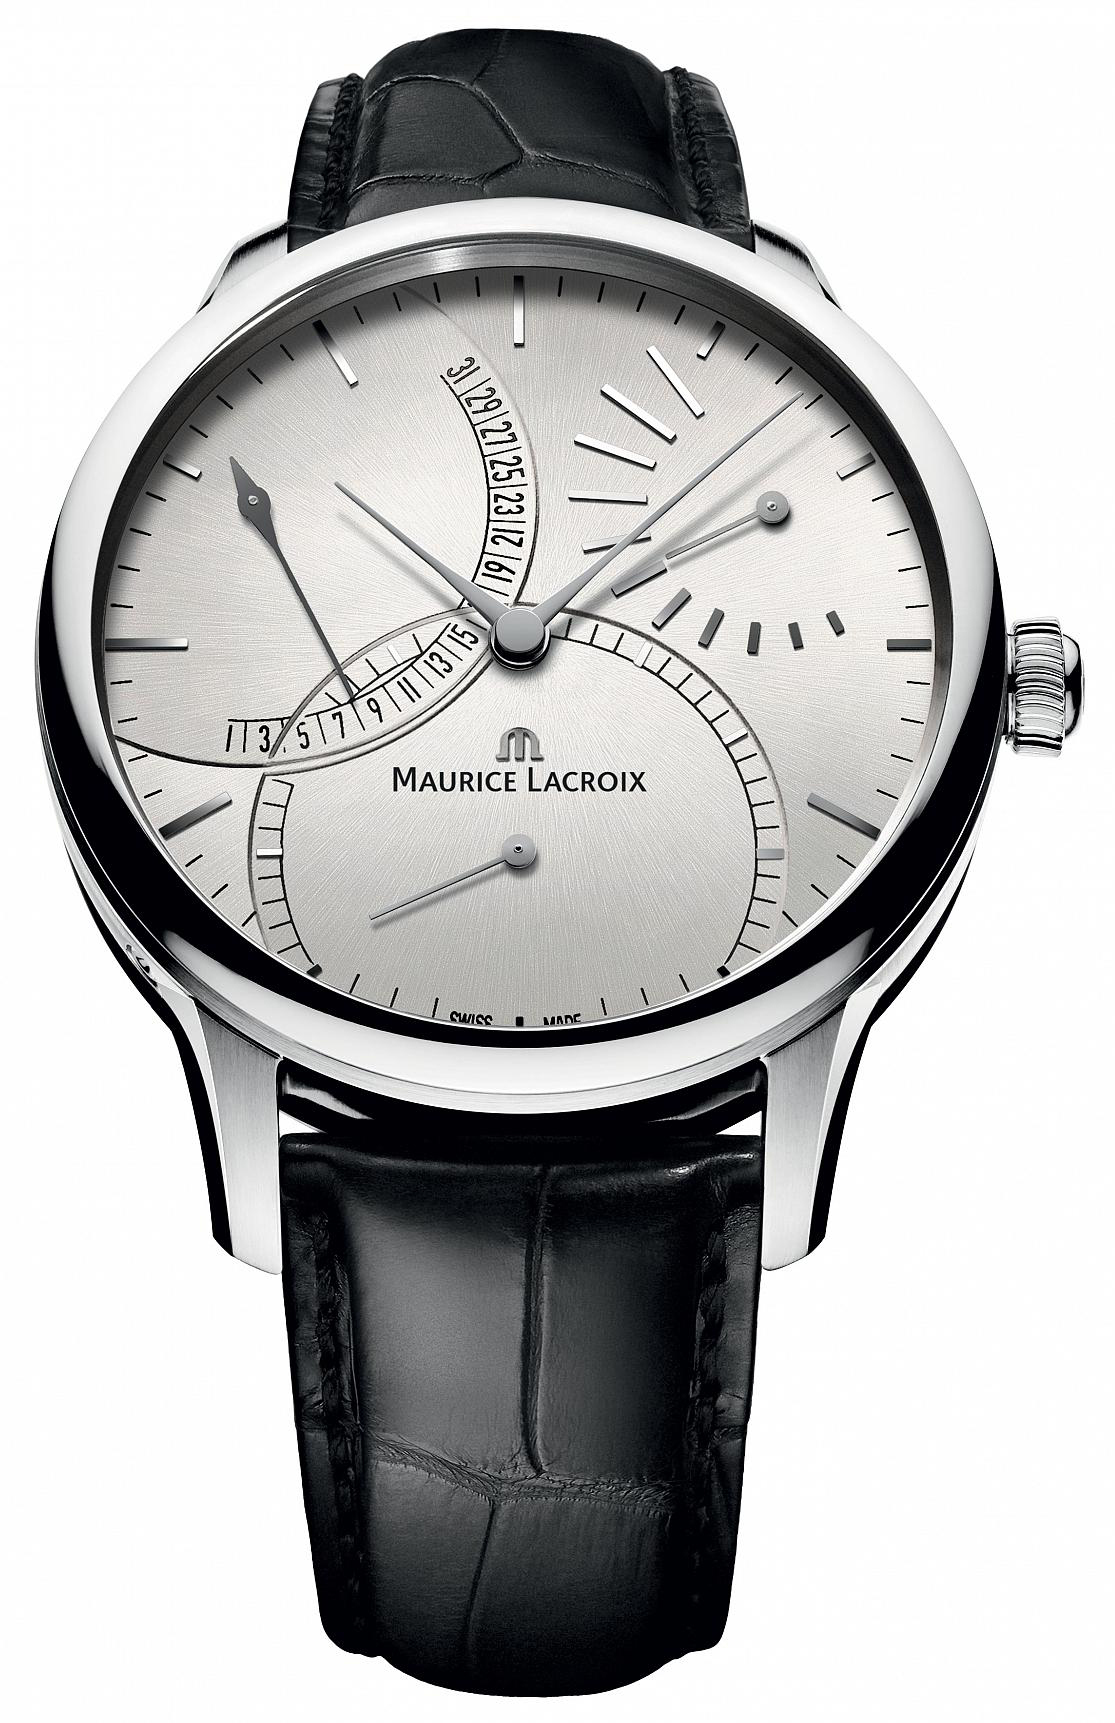 Maurice Lacroix Masterpiece Herrklocka MP6508-SS001-130-1 - Maurice Lacroix